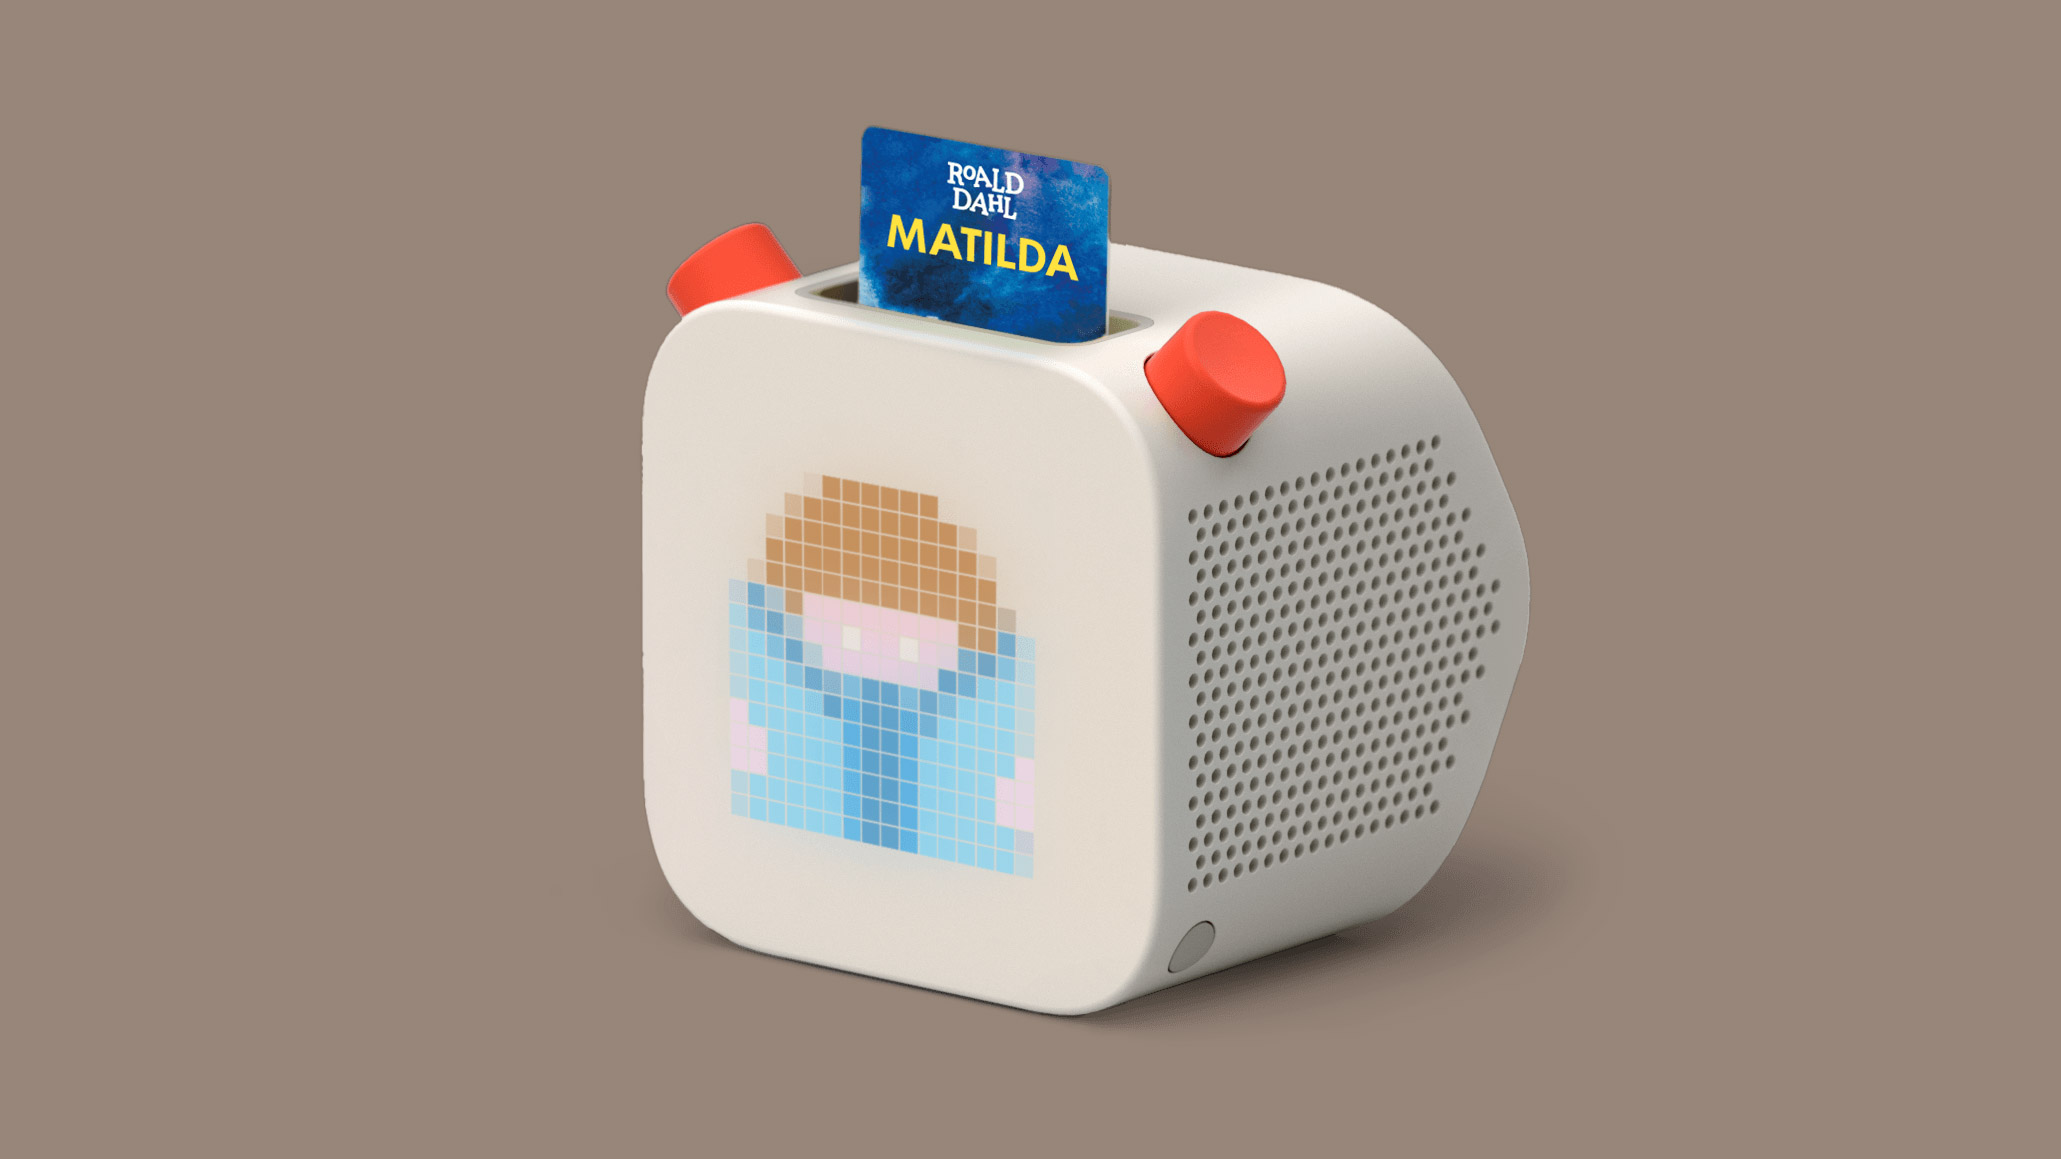 image of white radio looking box with a slot inserted that reads matilda yoto audio device for kids